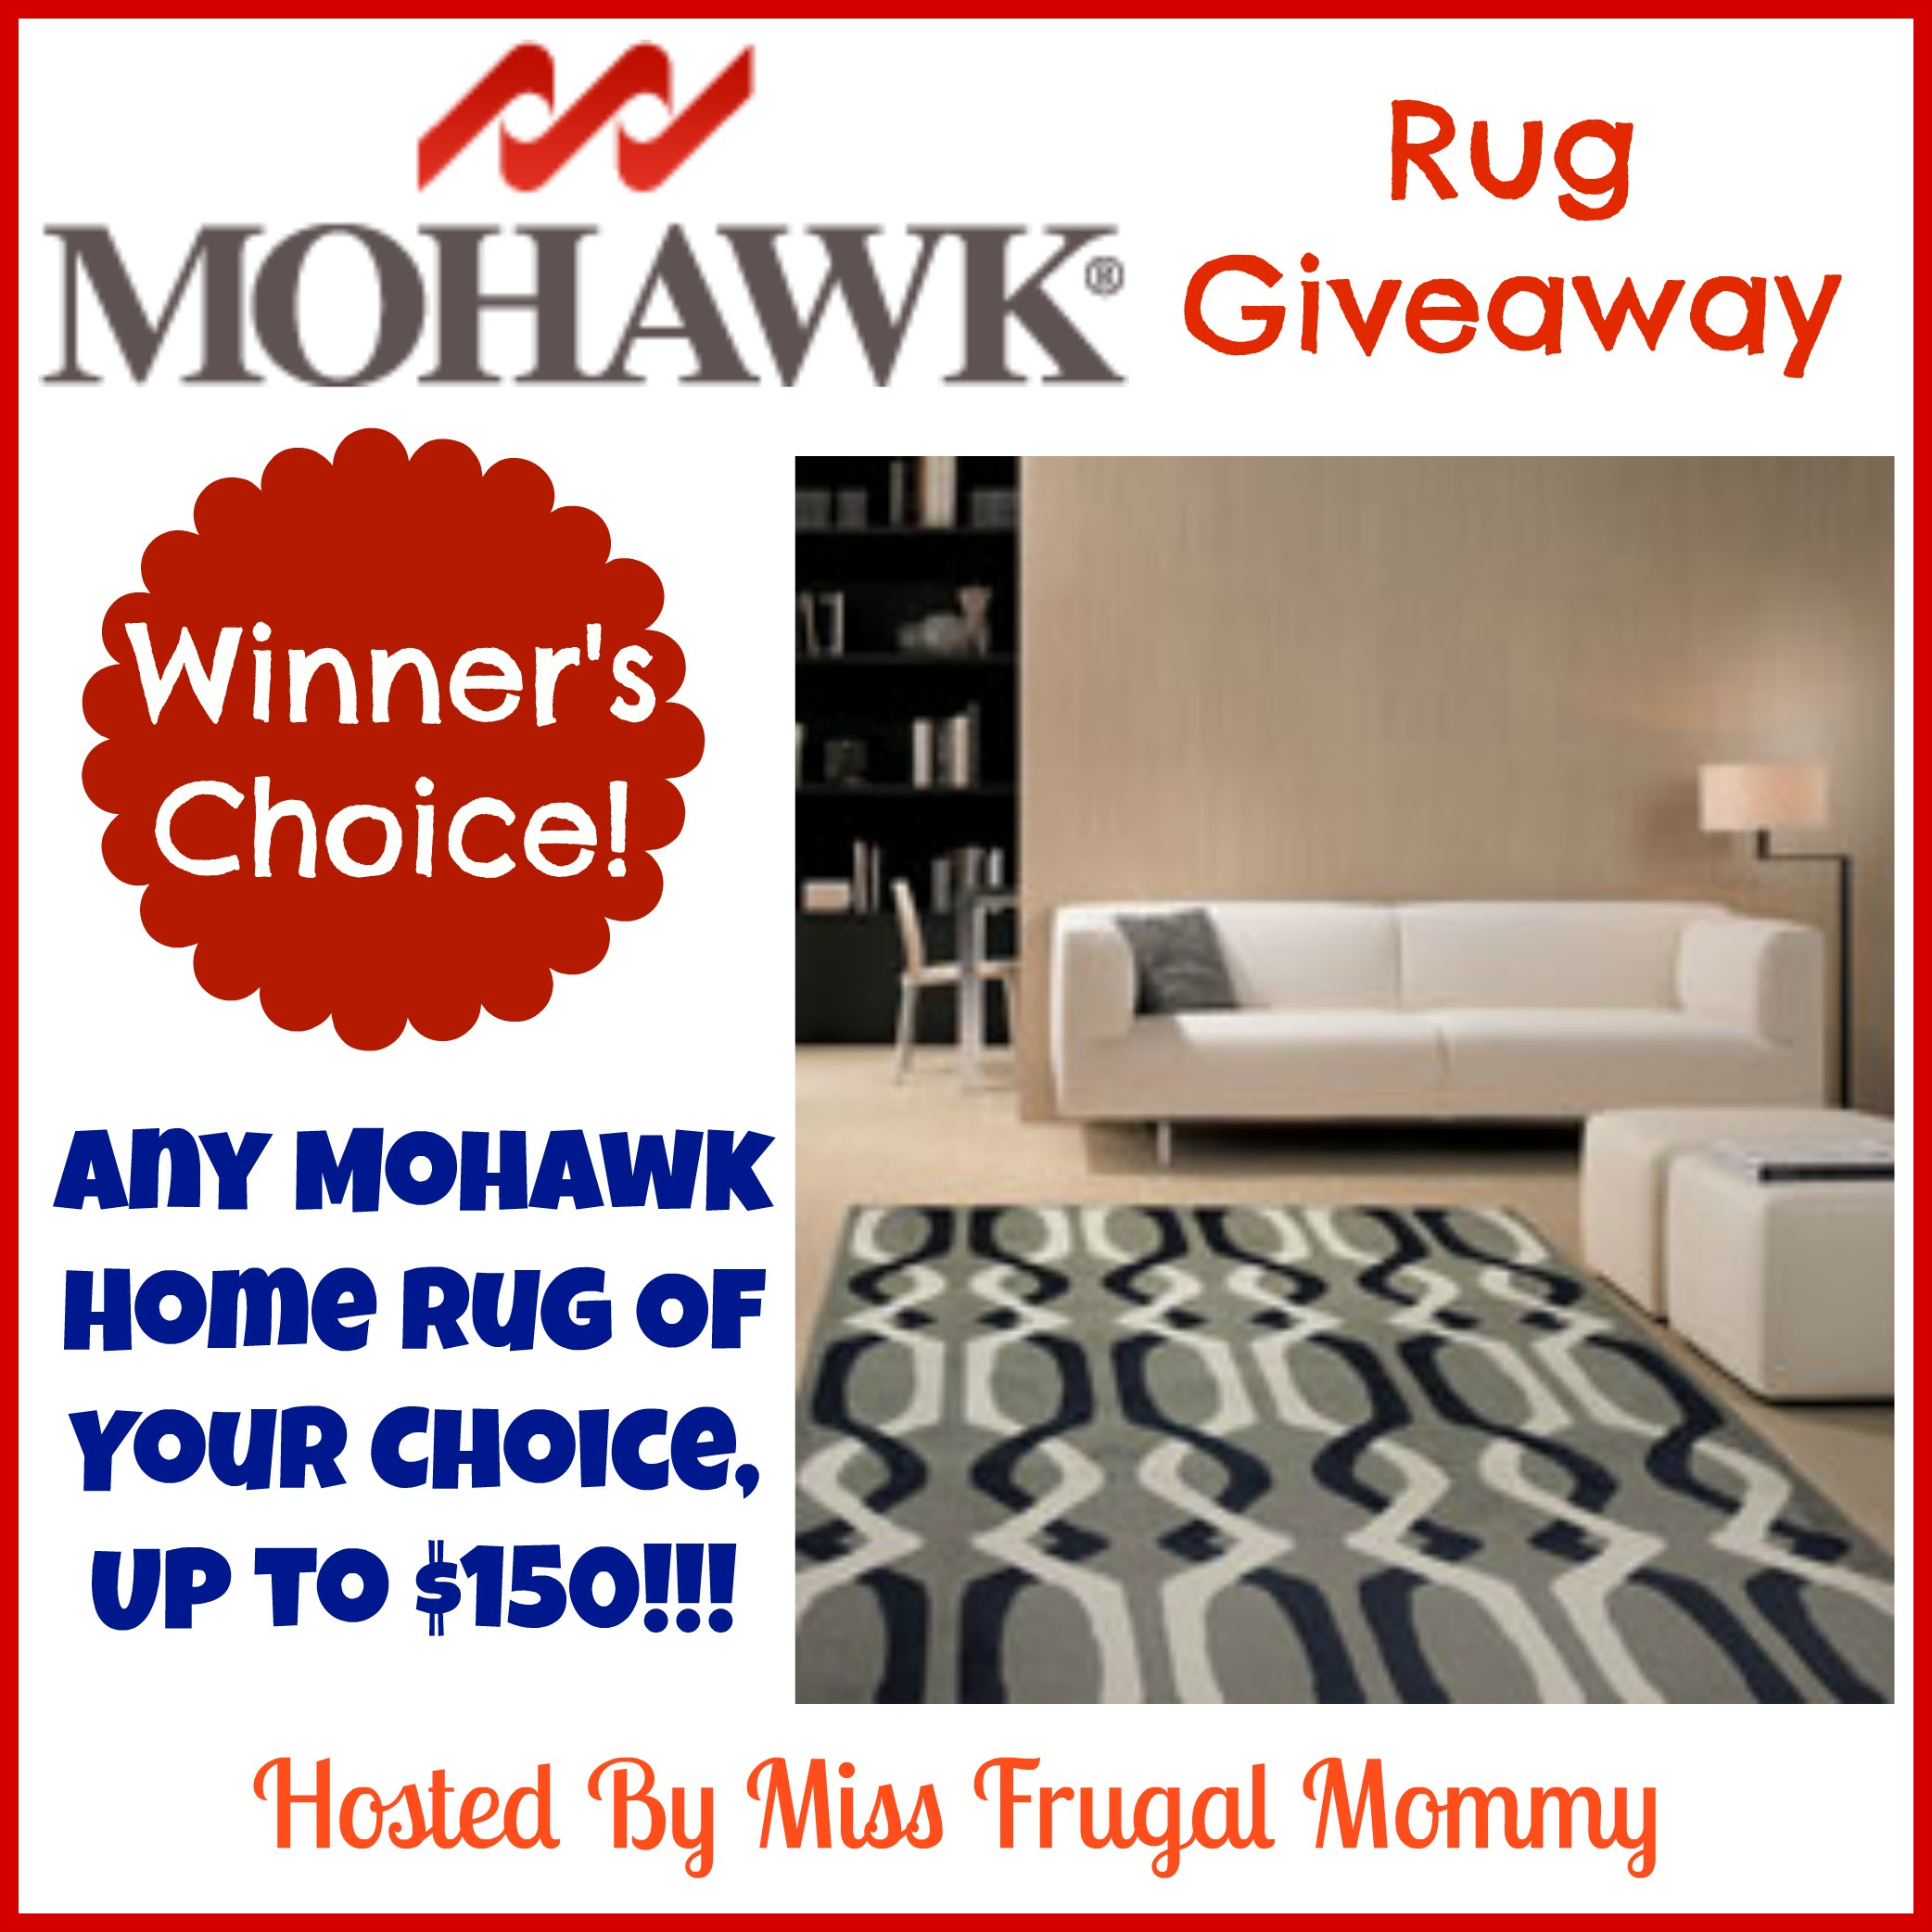 Enter the Mohawk Rug Giveaway. Ends 5/4.